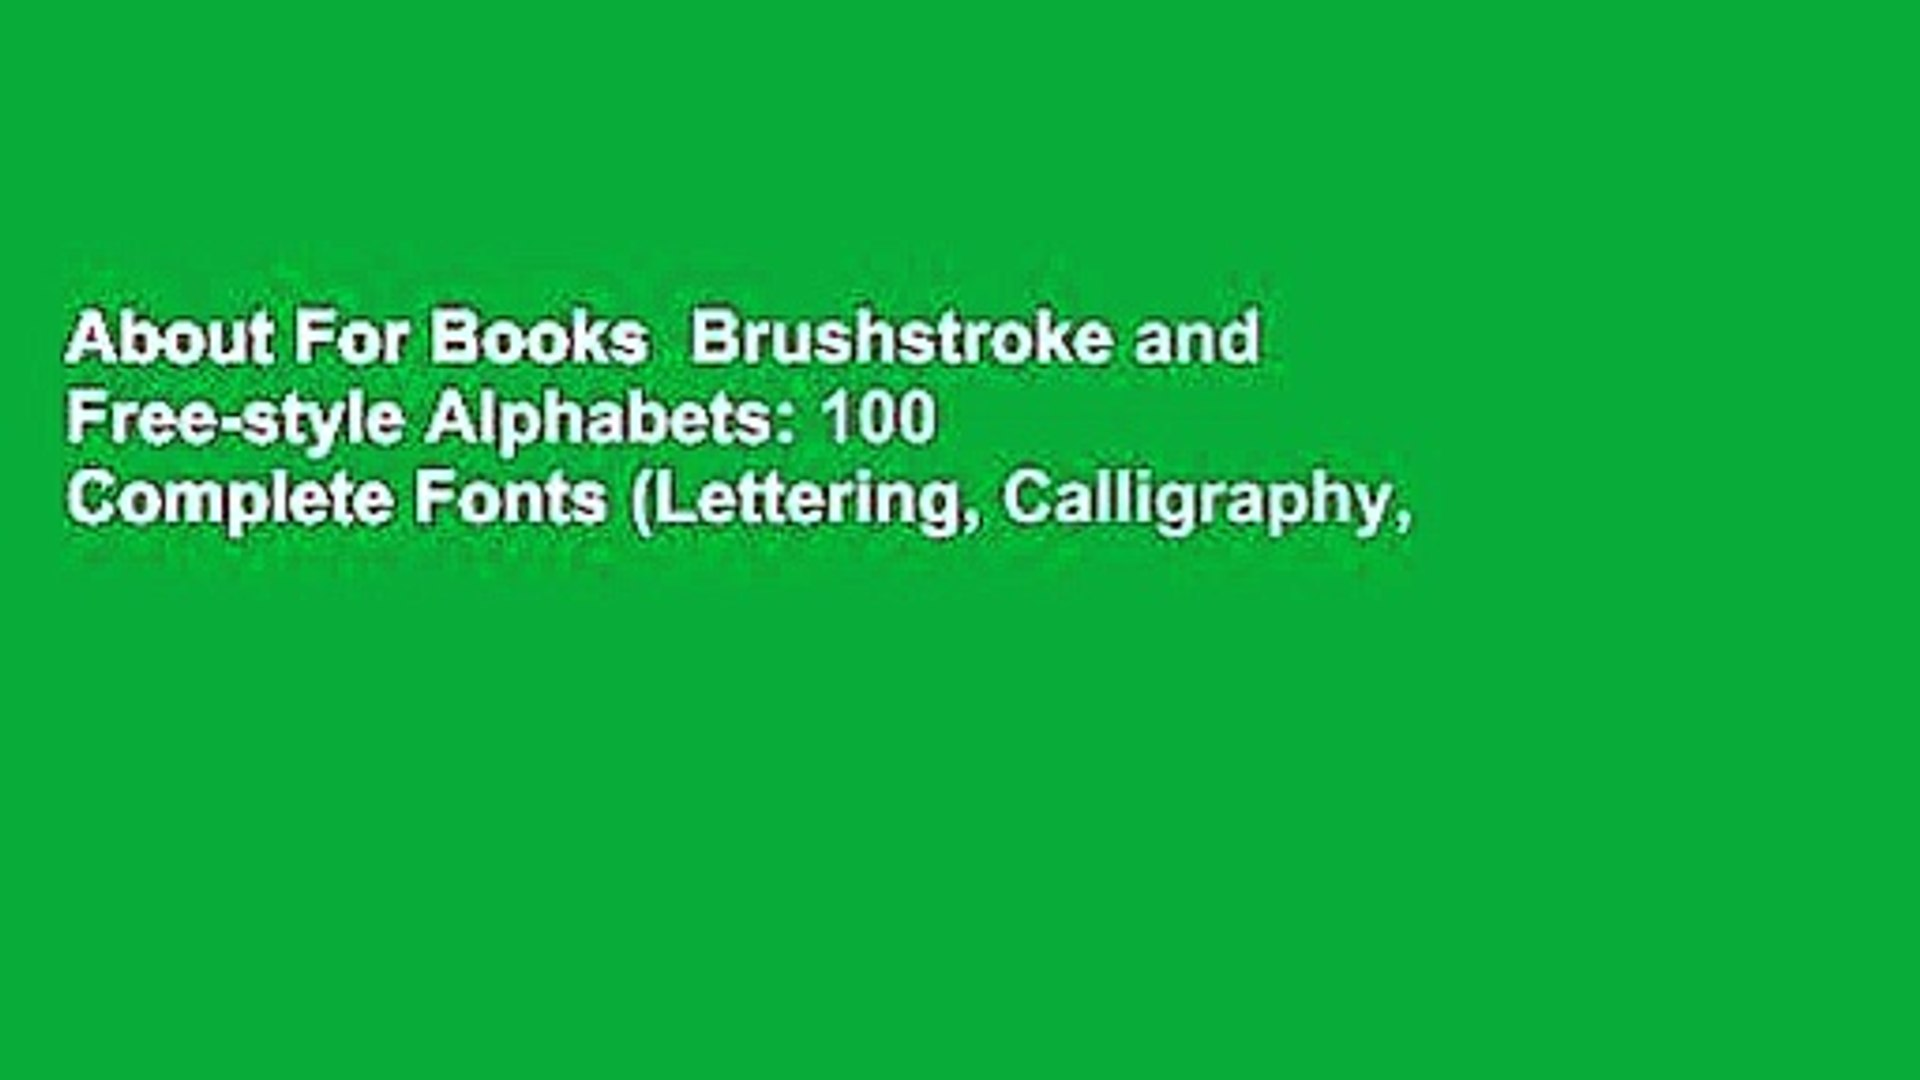 About For Books Brushstroke and Free-style Alphabets: 100 Complete Fonts  (Lettering, Calligraphy,